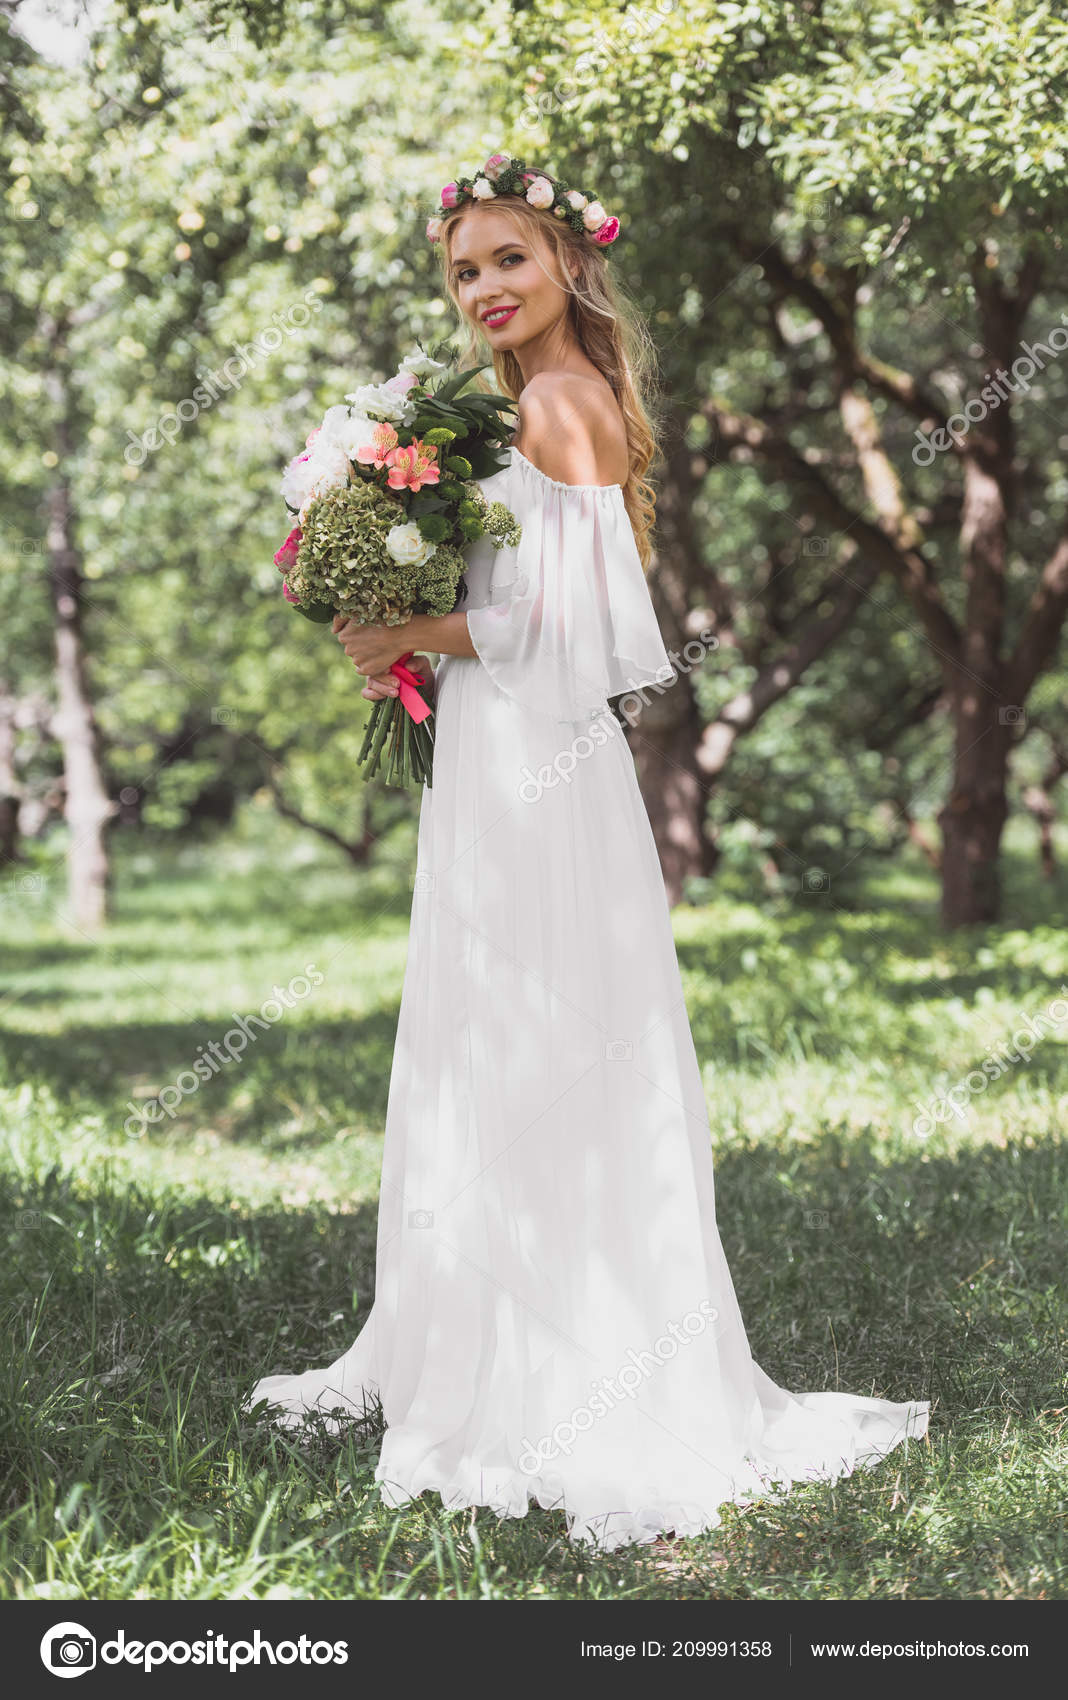 Beautiful Young Bride In Wedding Dress Holding Bouquet Of Flowers And Smiling At Camera Outdoors Photo By VitalikRadko